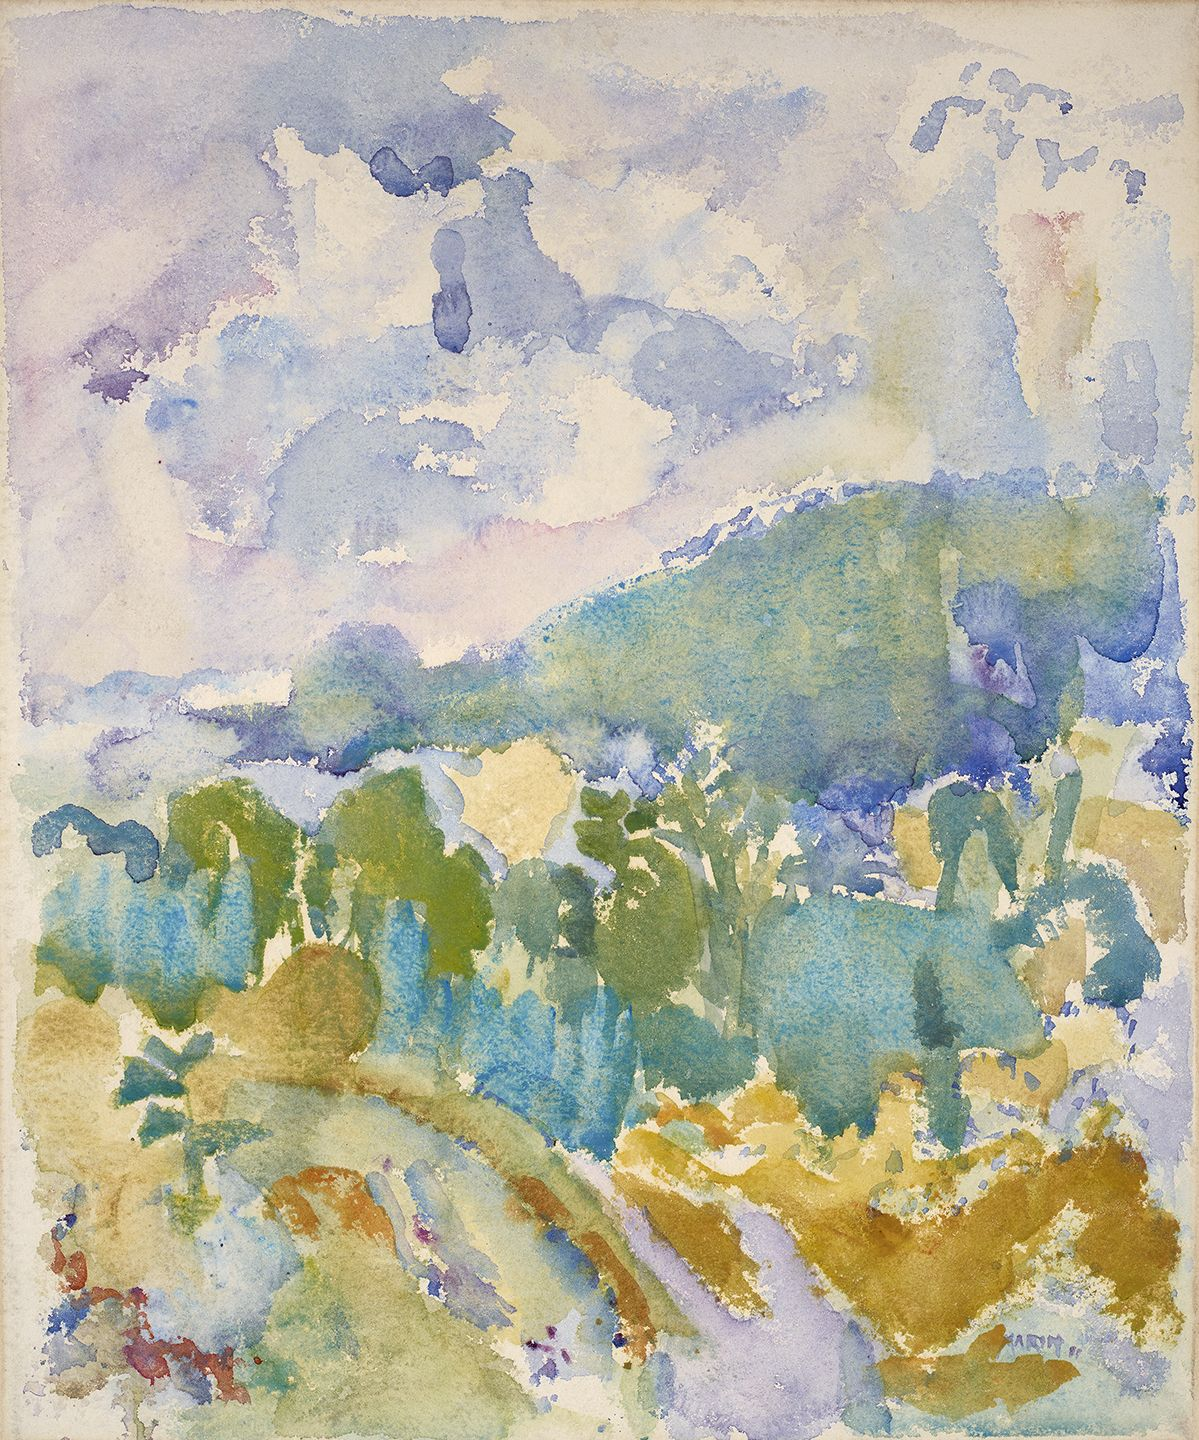 John Marin (1870-1953), Hudson River Valley, 1911